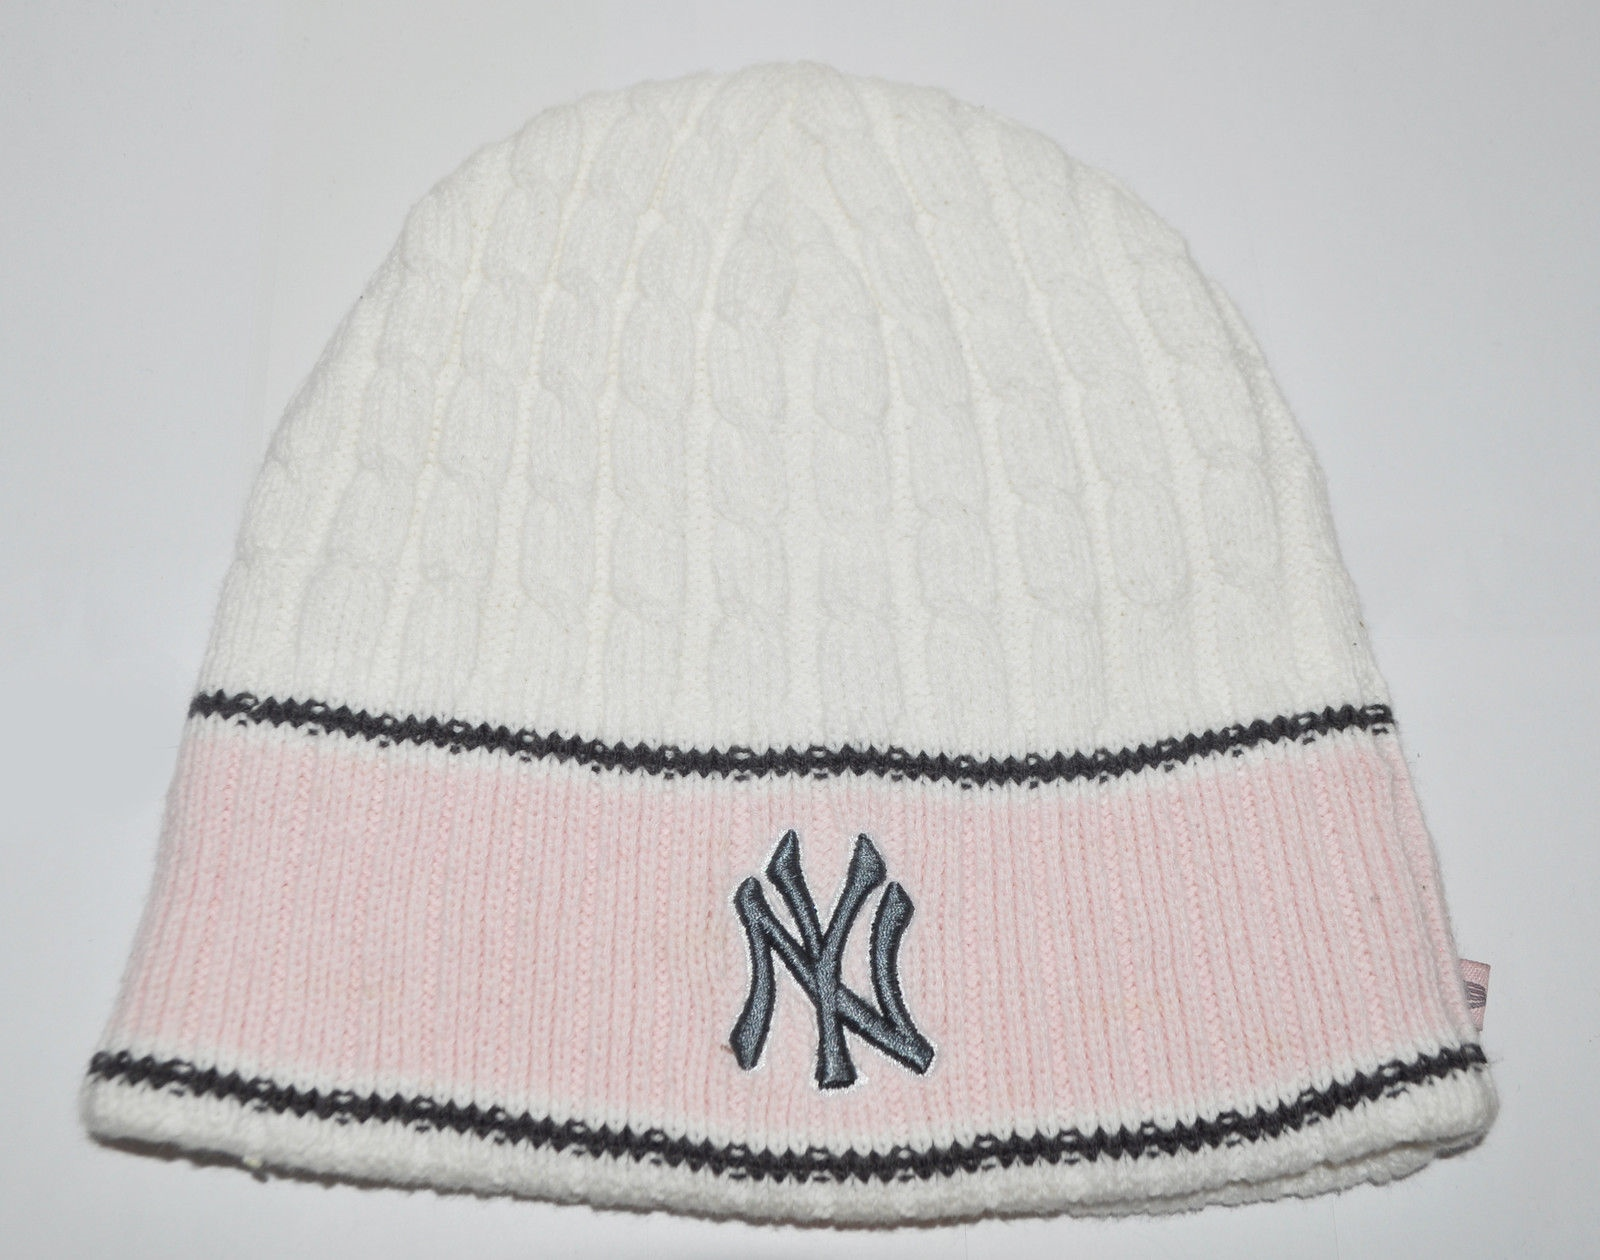 fefdb85083e New Era NY New York Yankees Beanie Hat (BH3283) 6012258304285